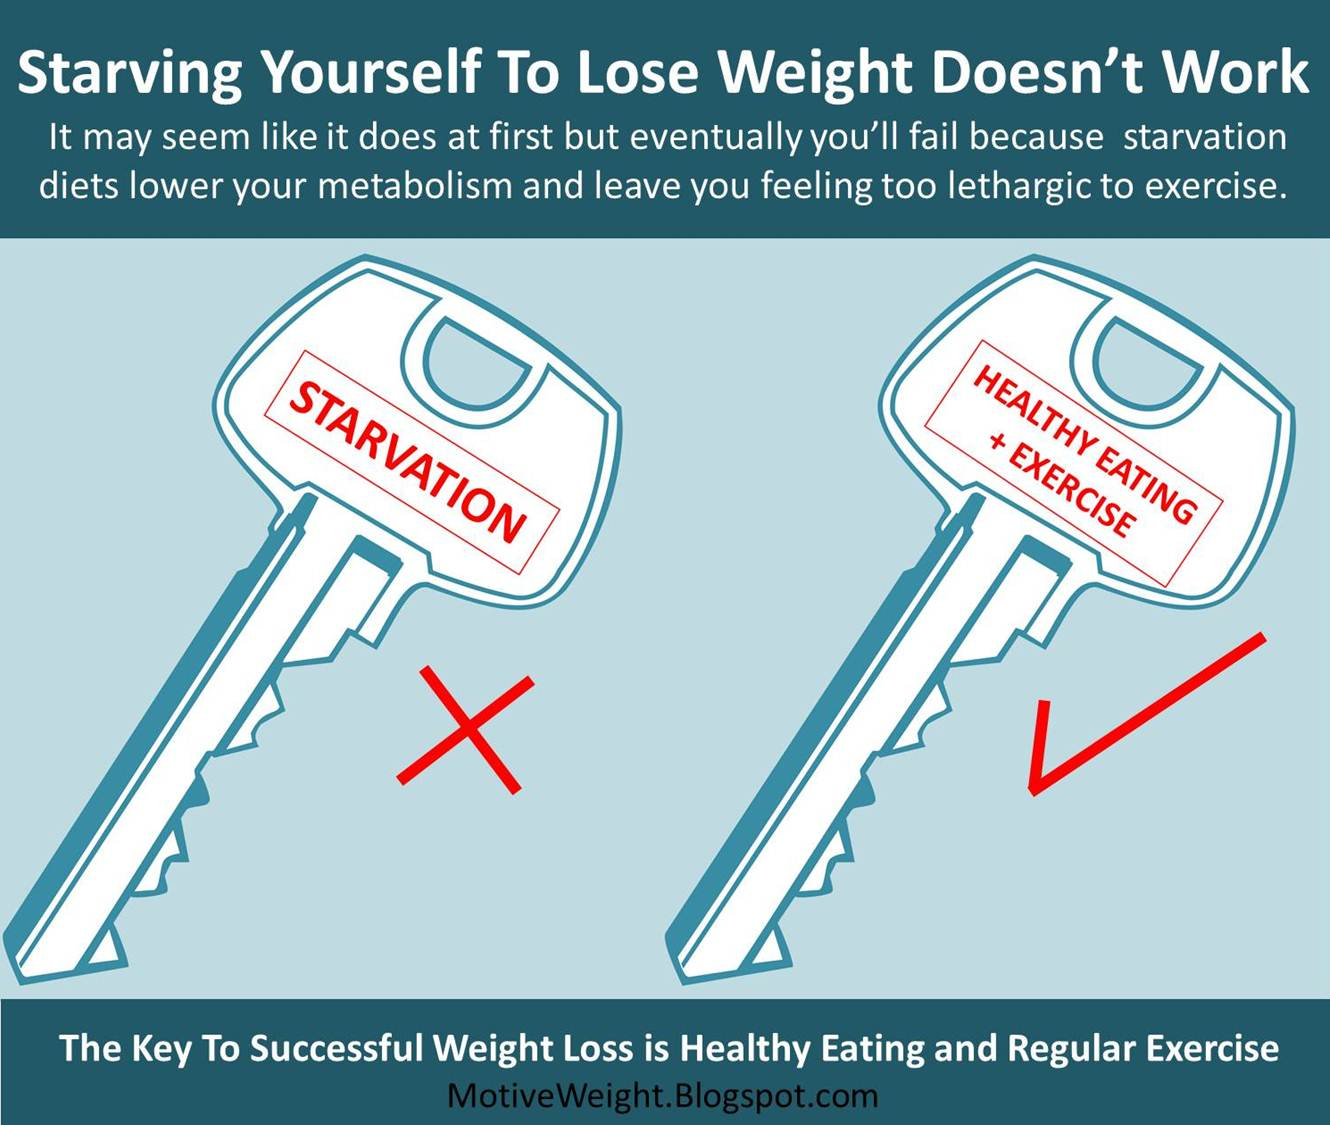 MotiveWeight: Starvation Diets Do Not Work